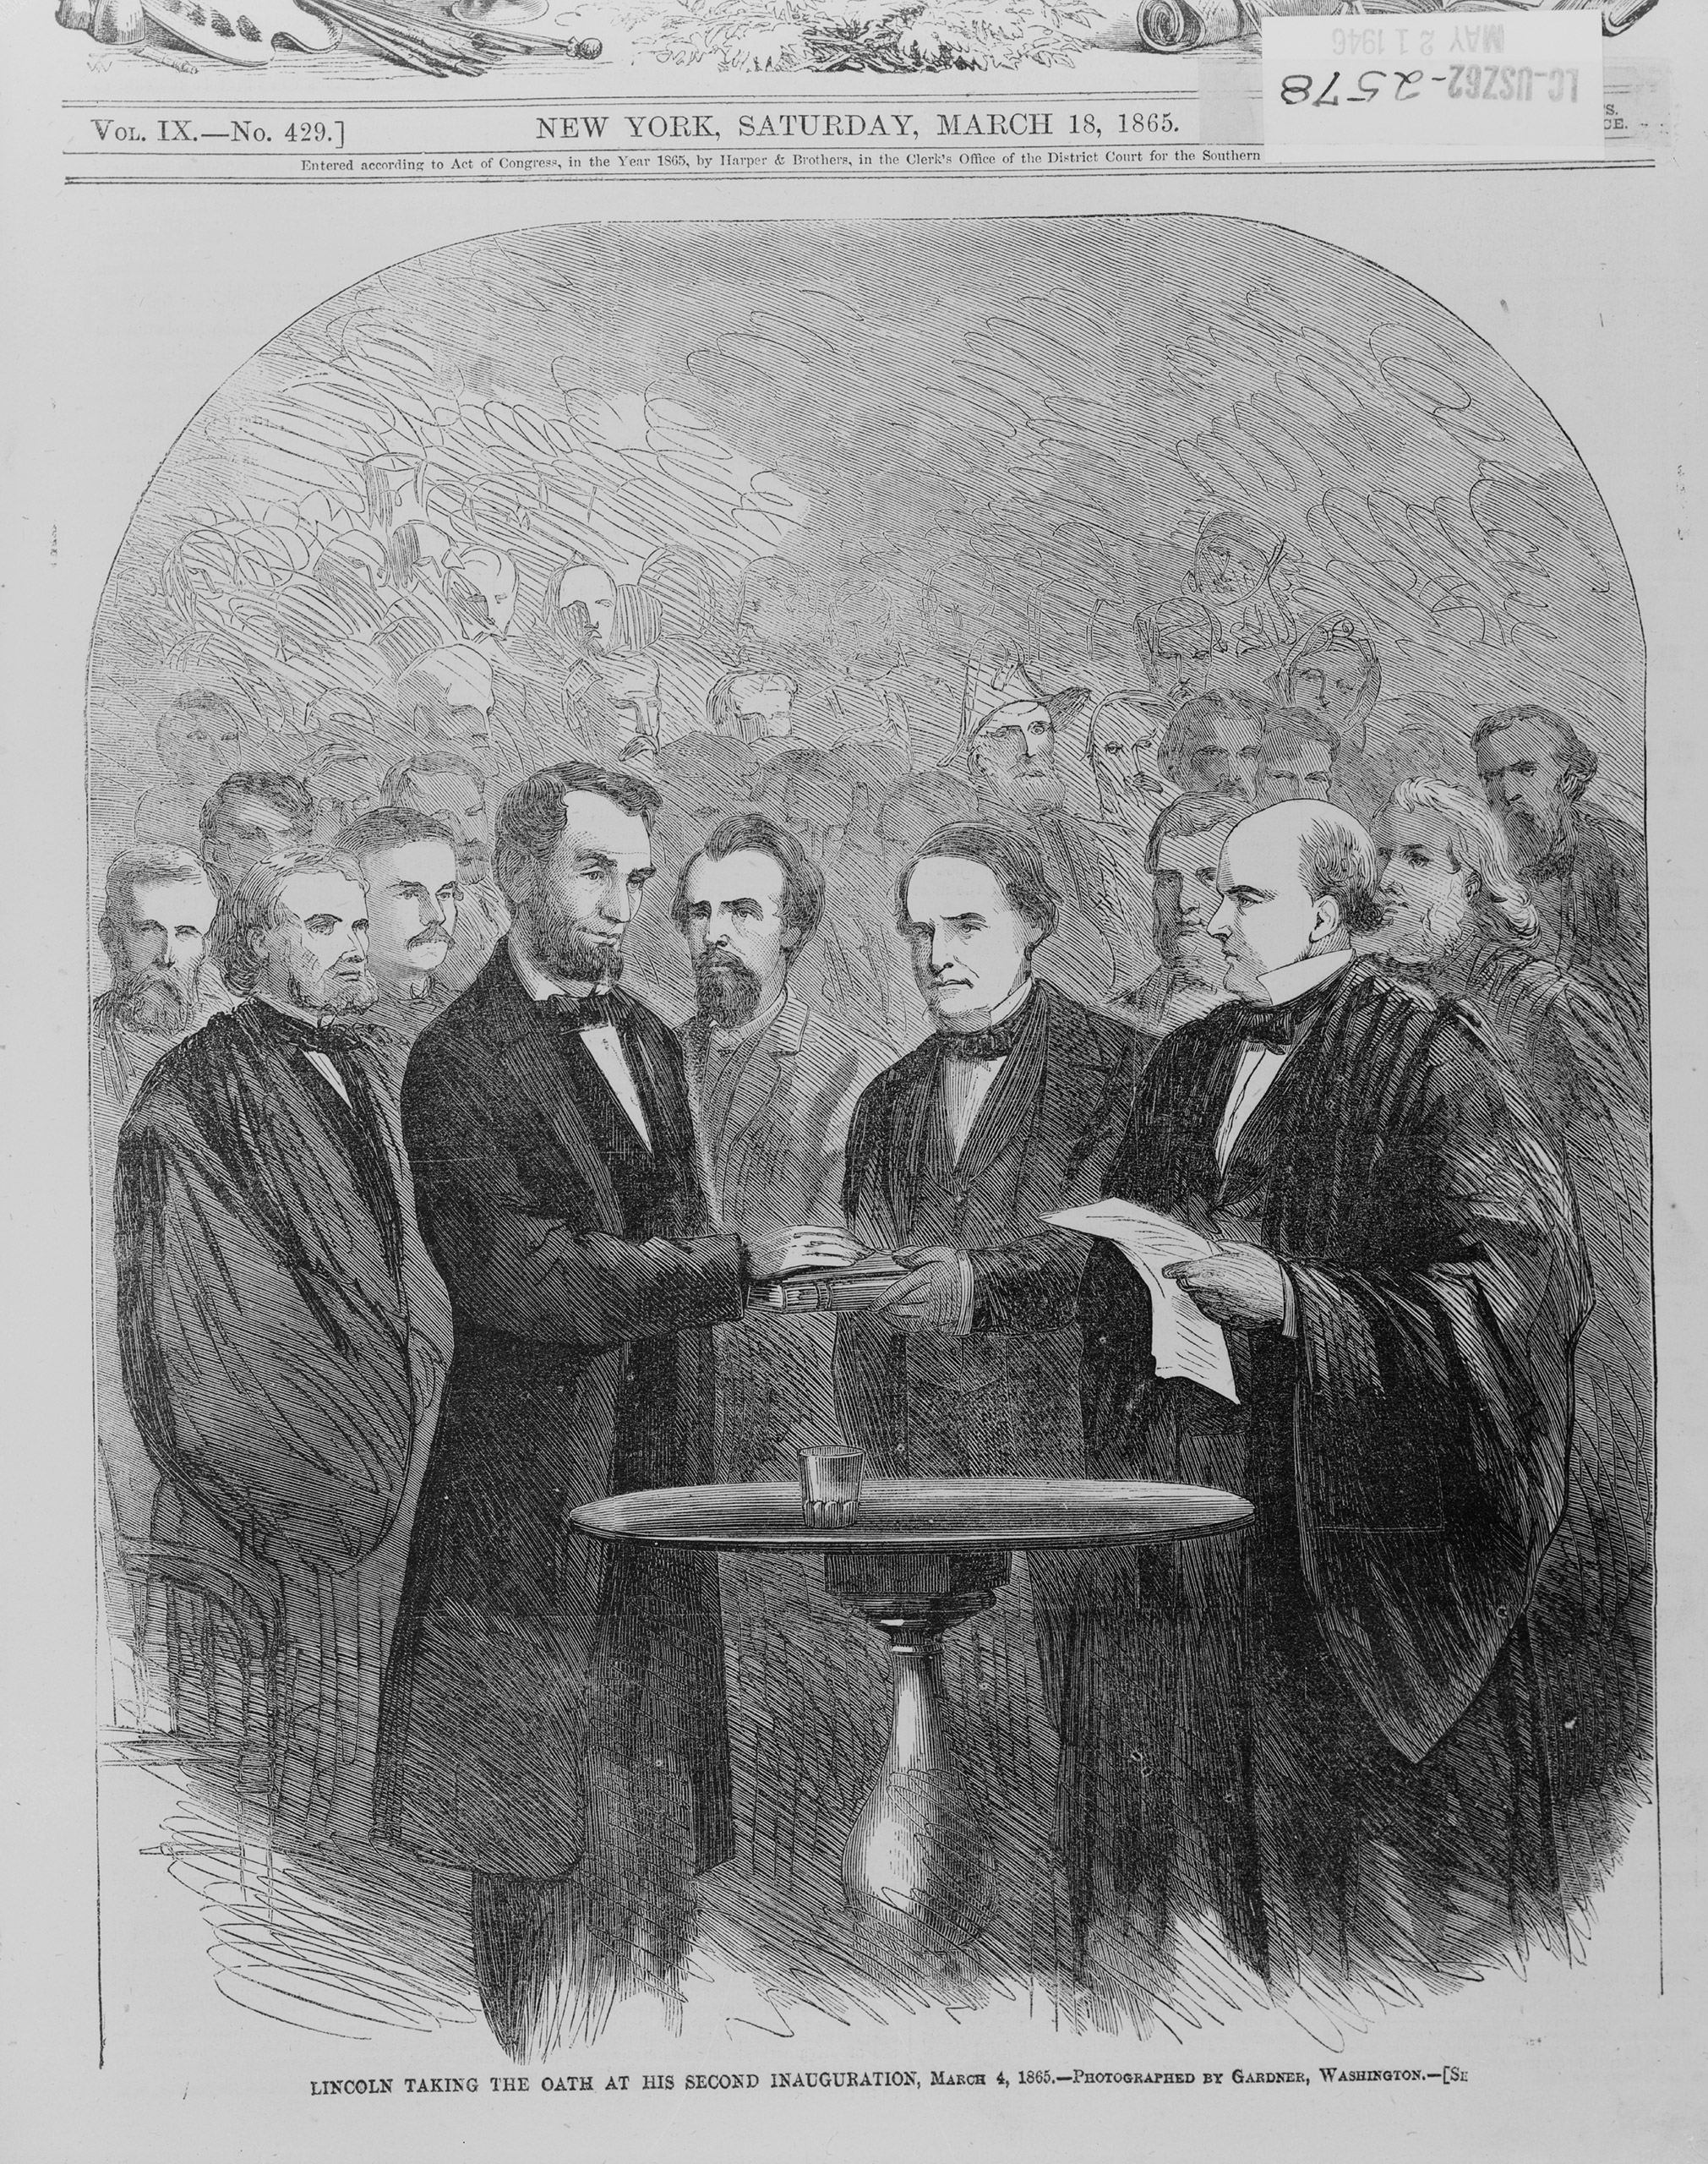 Abraham Lincoln taking the oath at his second inauguration, March 4, 1865.